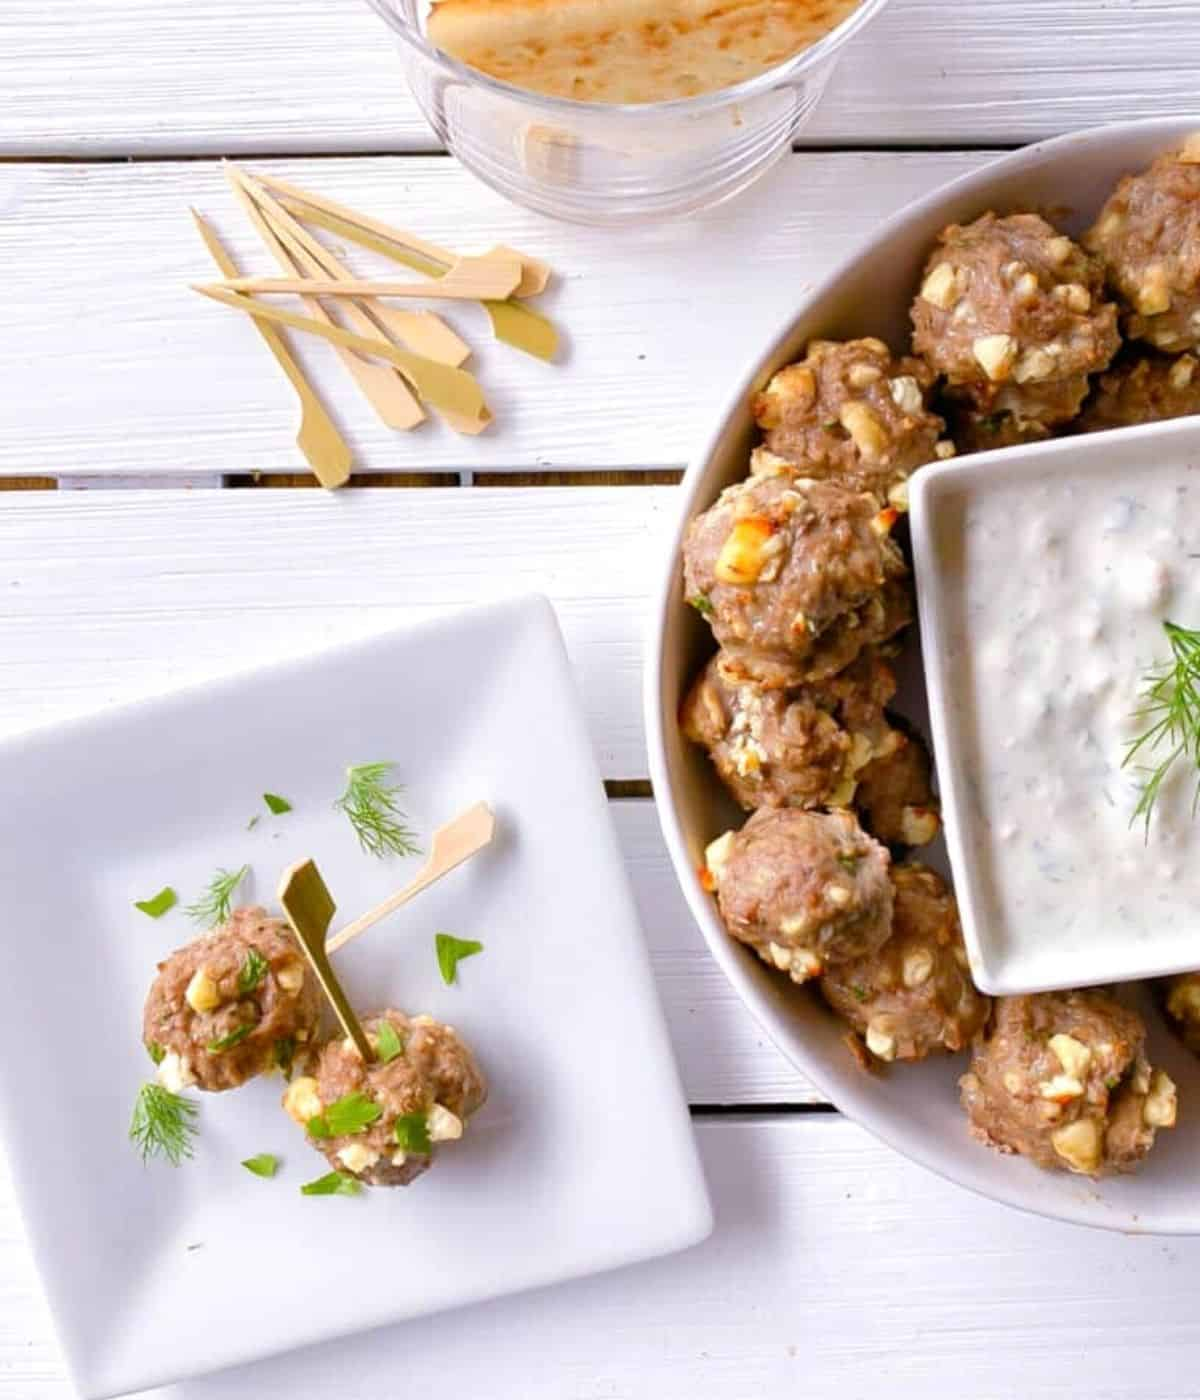 Greek lamb meatball appetizers with feta cheese.